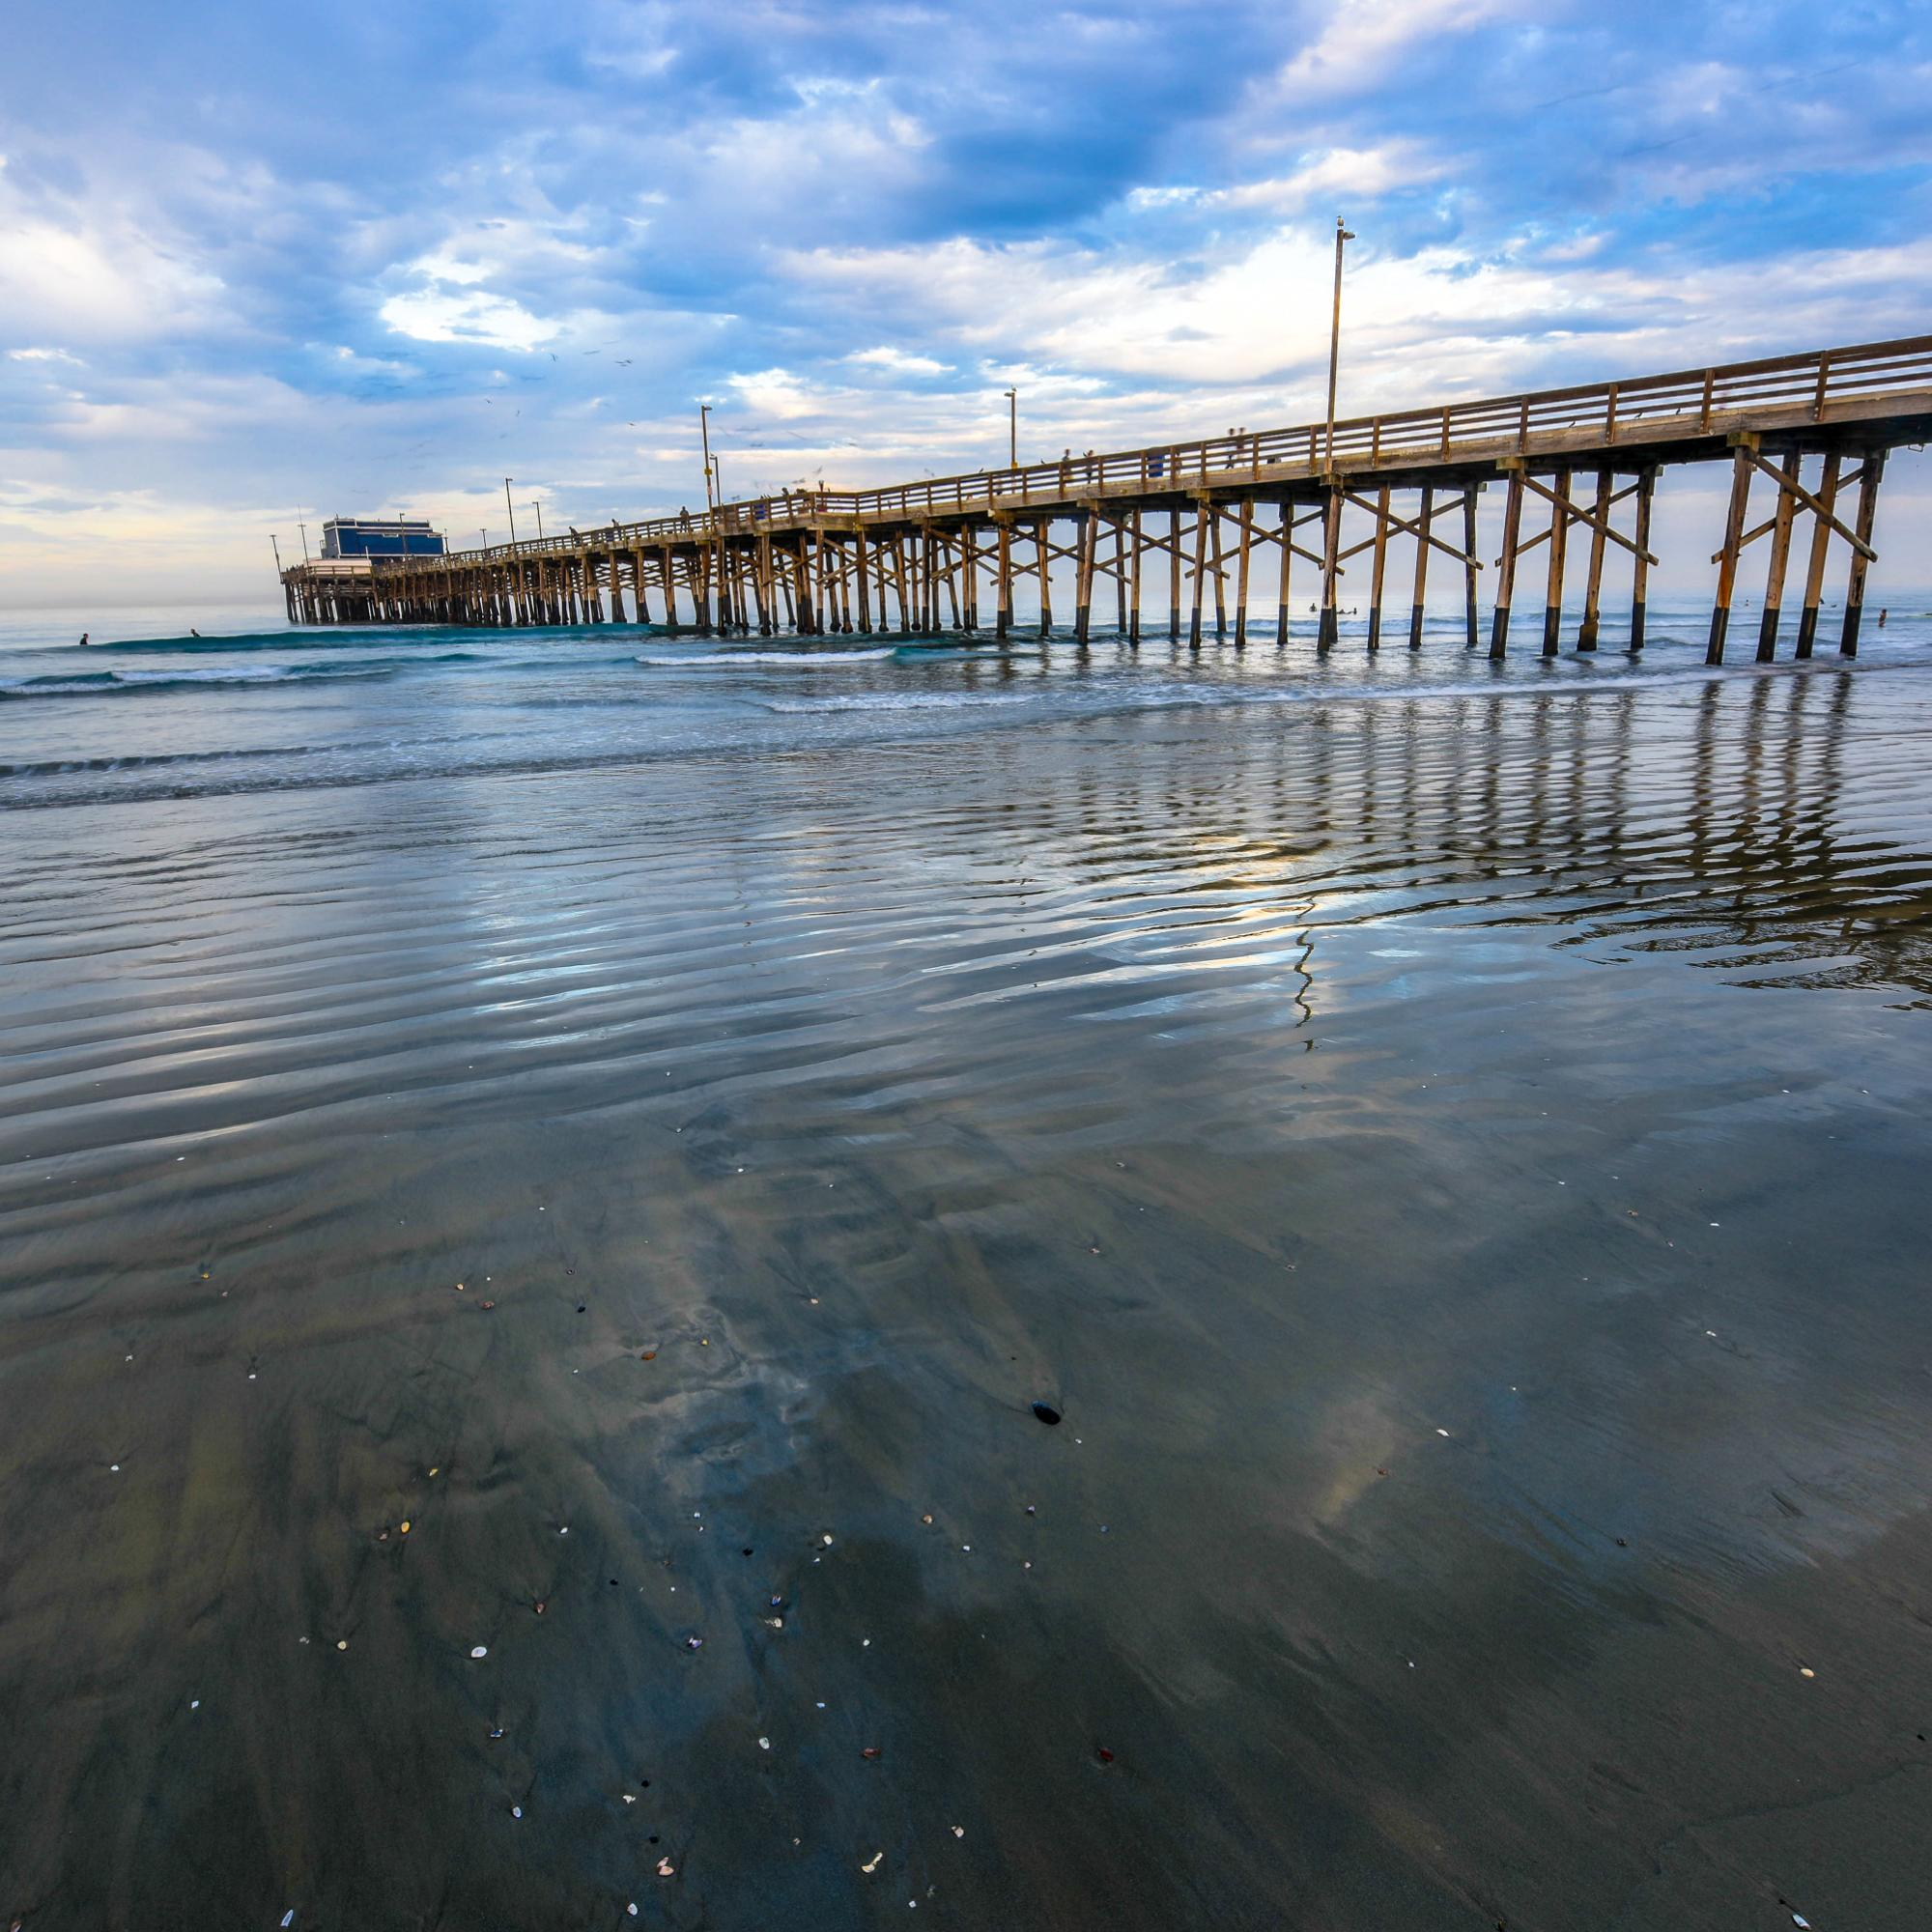 Sunday morning at Newport Beach Pier